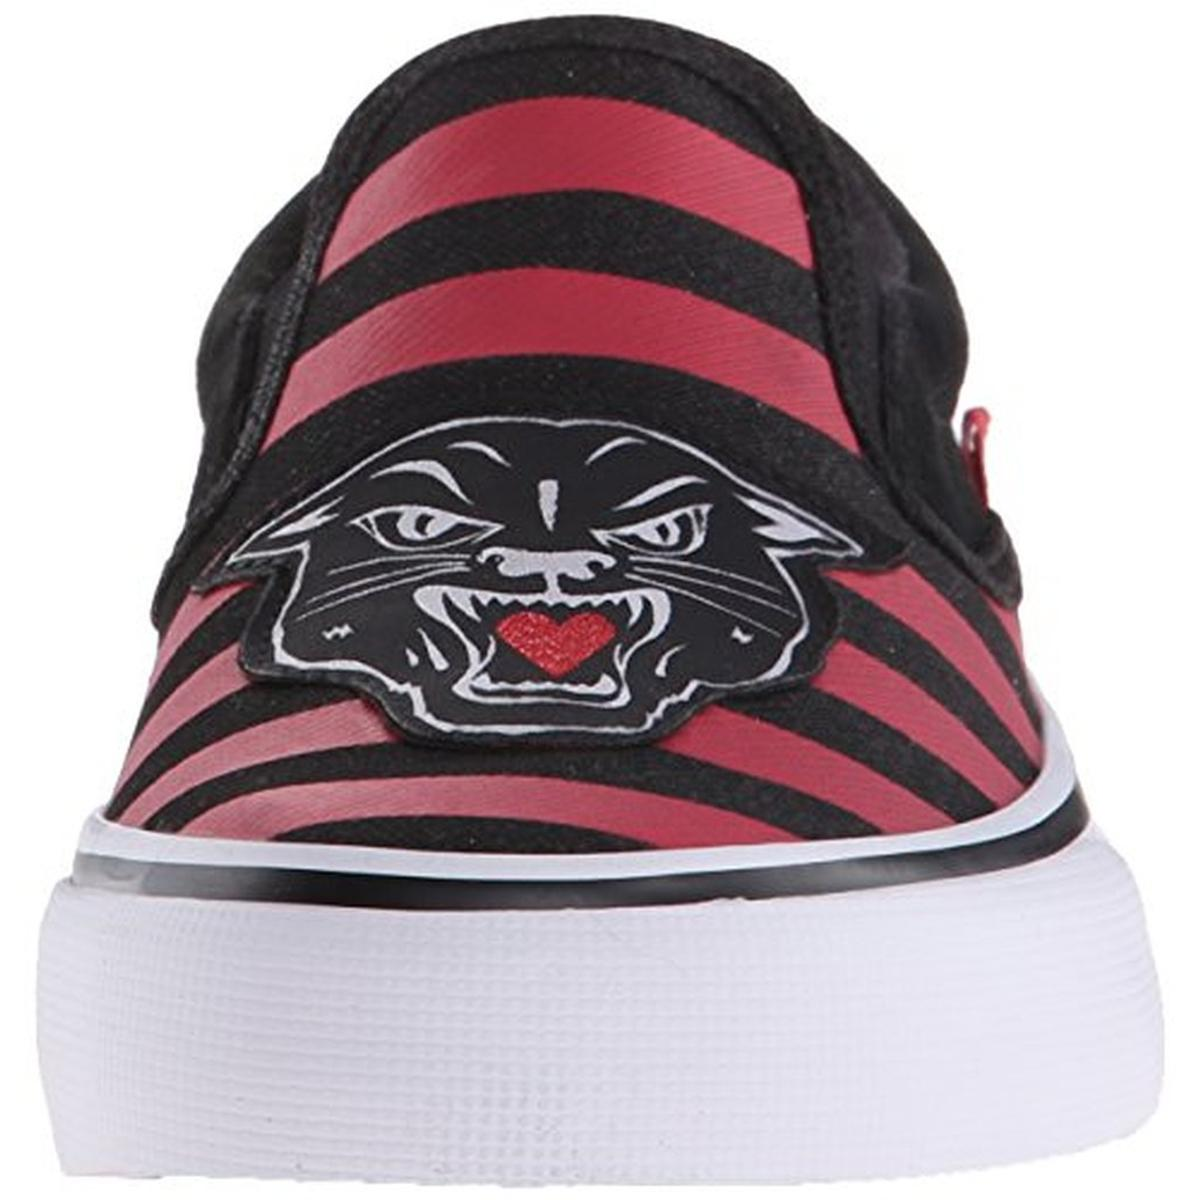 Skate shoes walmart - About This Item